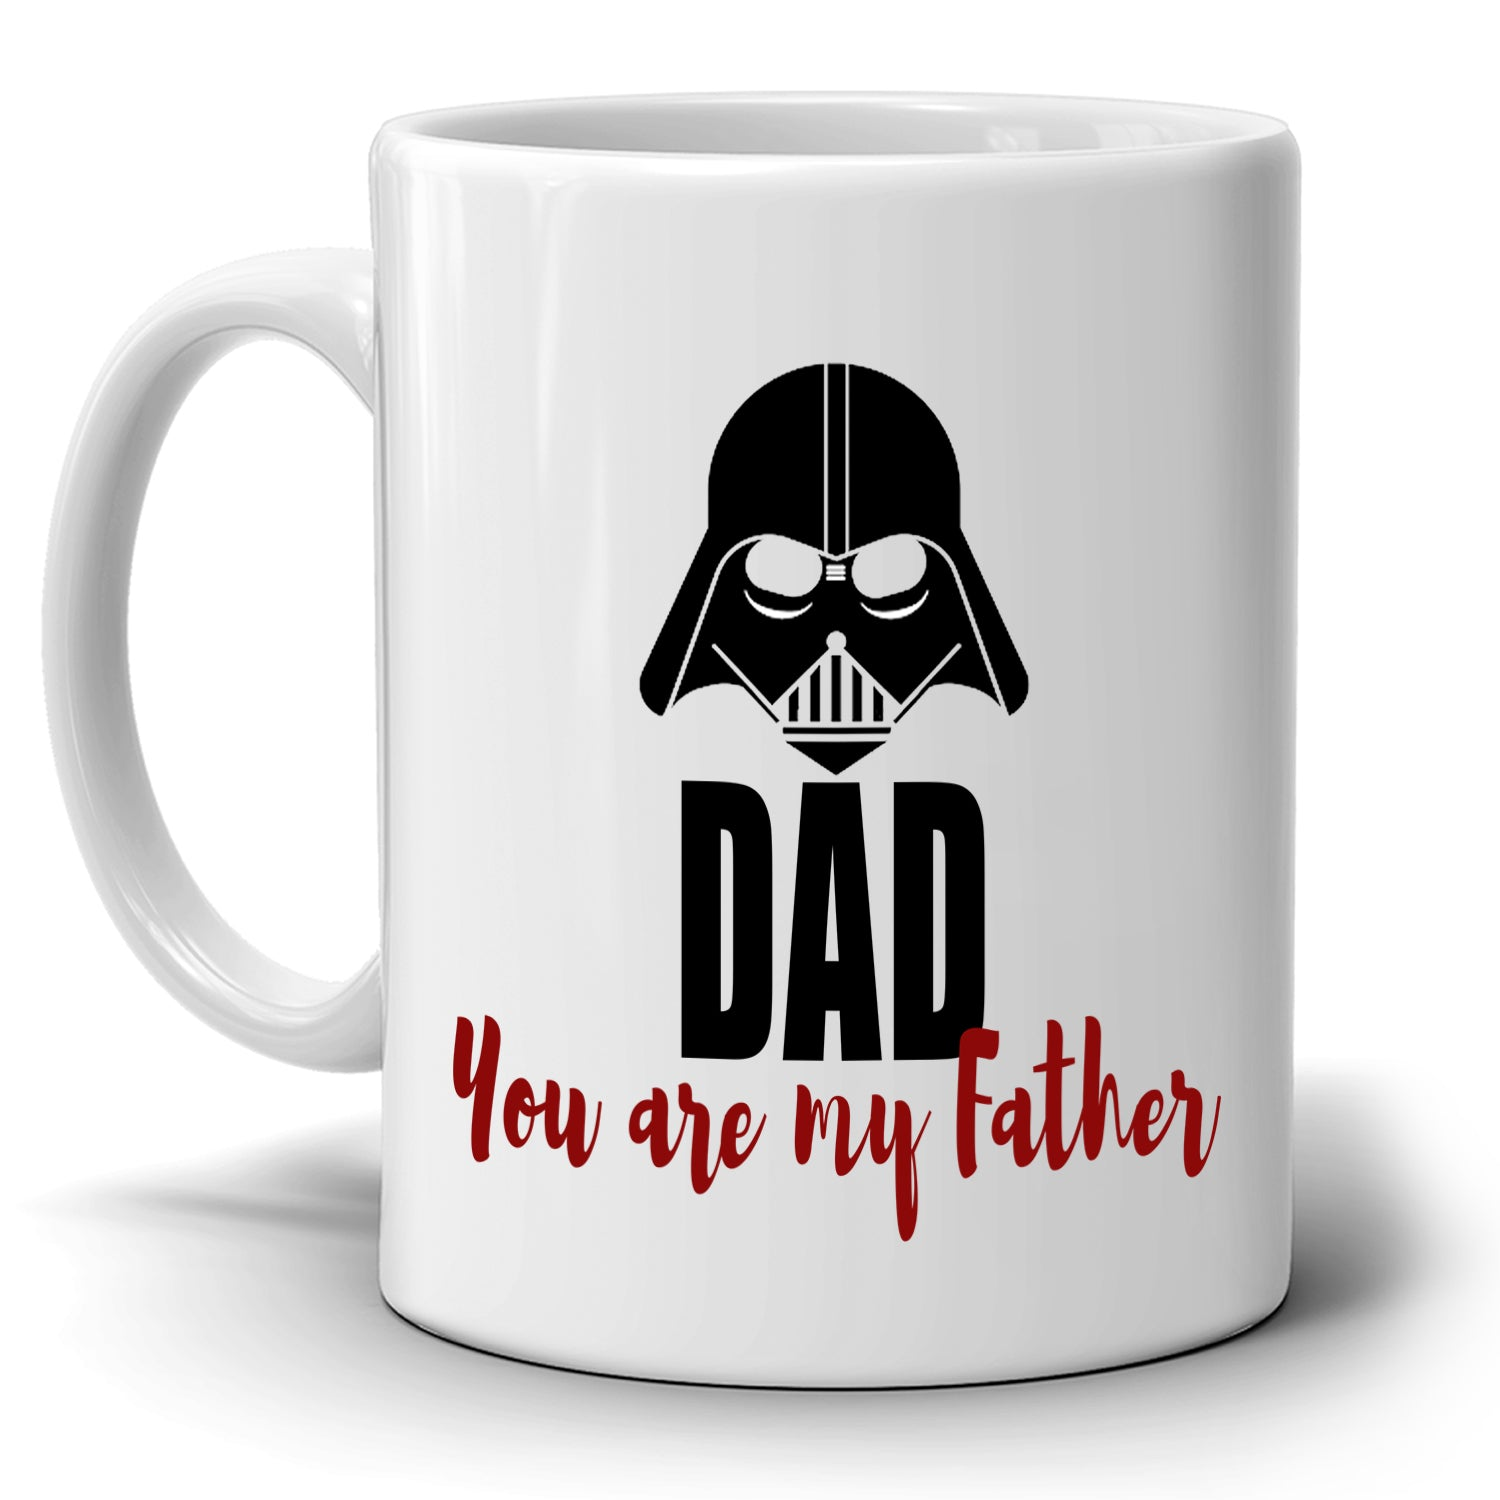 Dad You Are My Father Coffee Mug Birthday Gifts Printed On Both Sides